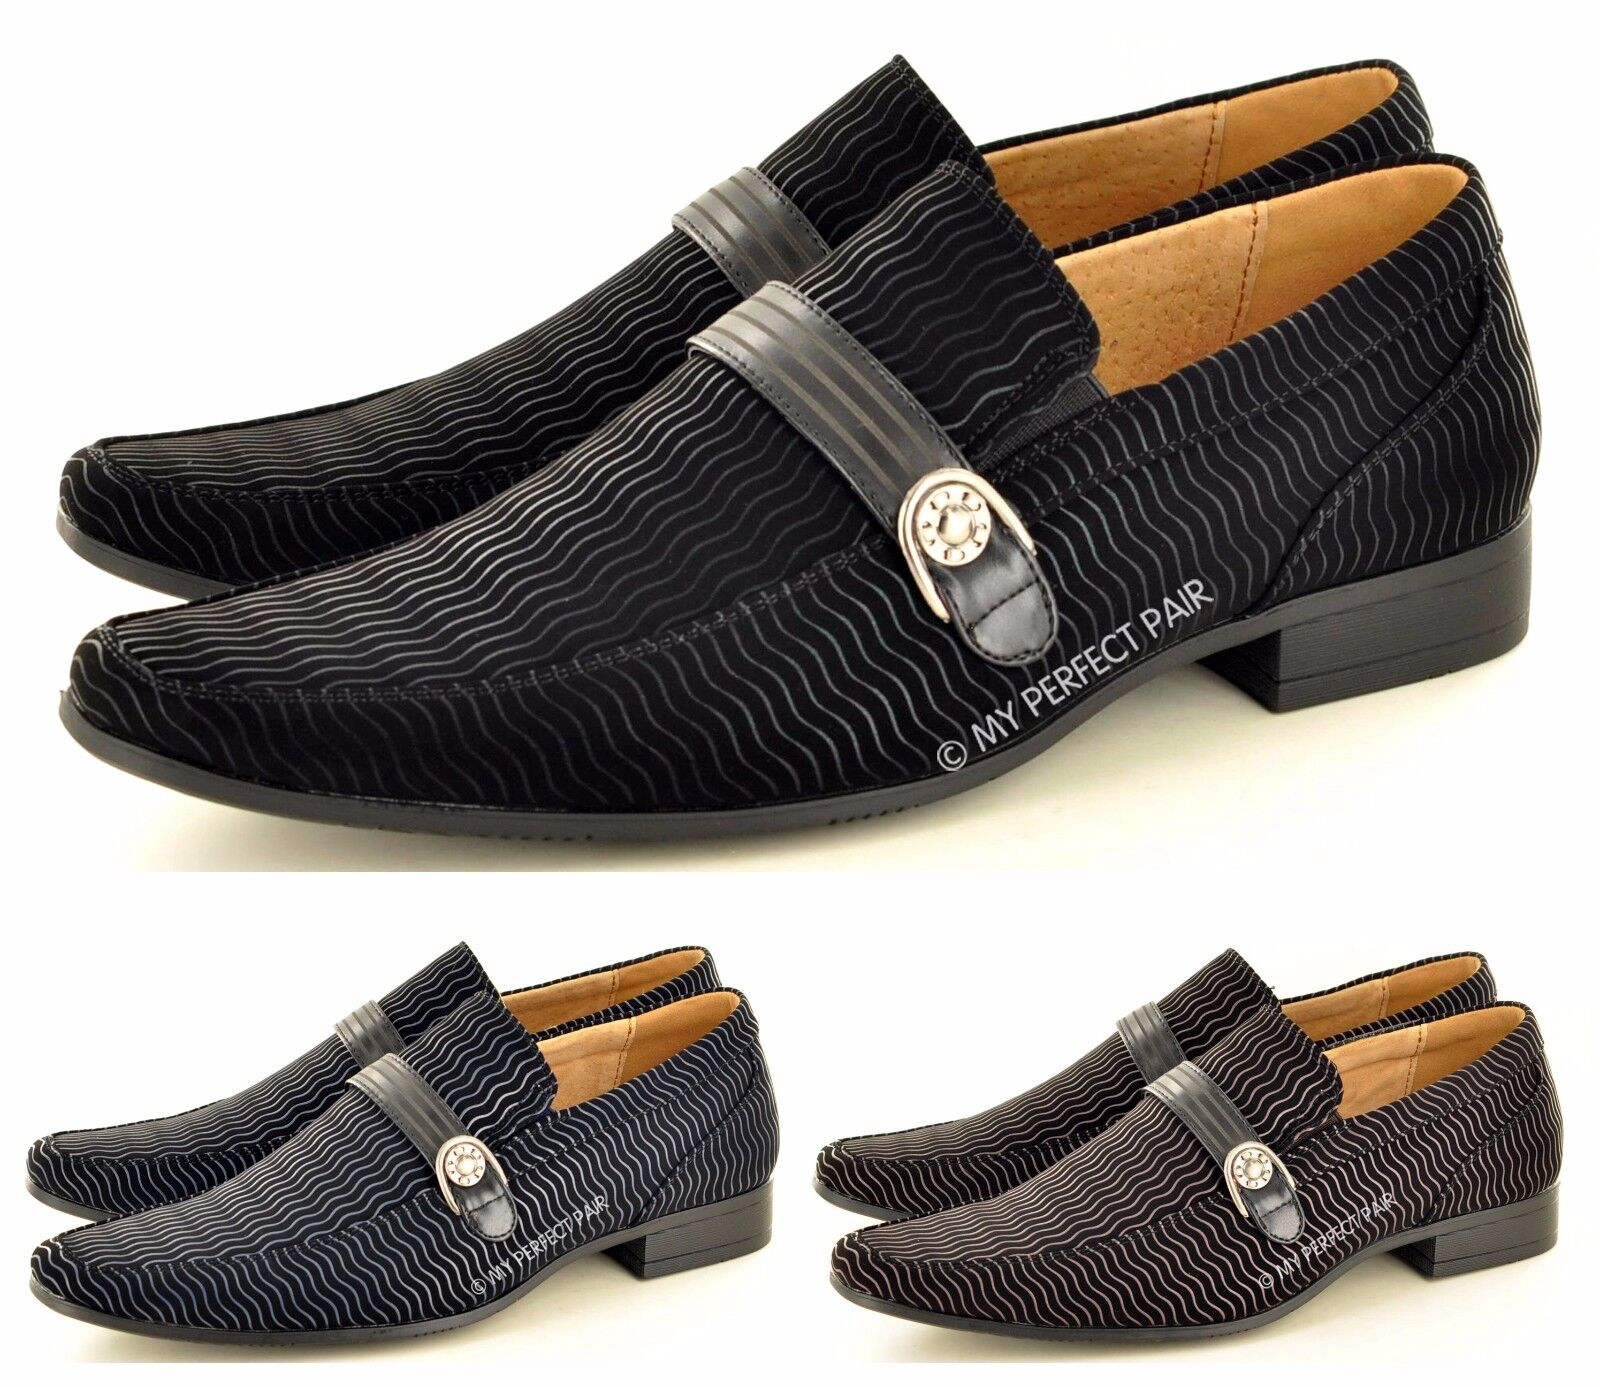 New Mens Italian Style Formal/ Wedding Available Slip On  shoes Available Wedding UK Size 6 -12 9ac3df